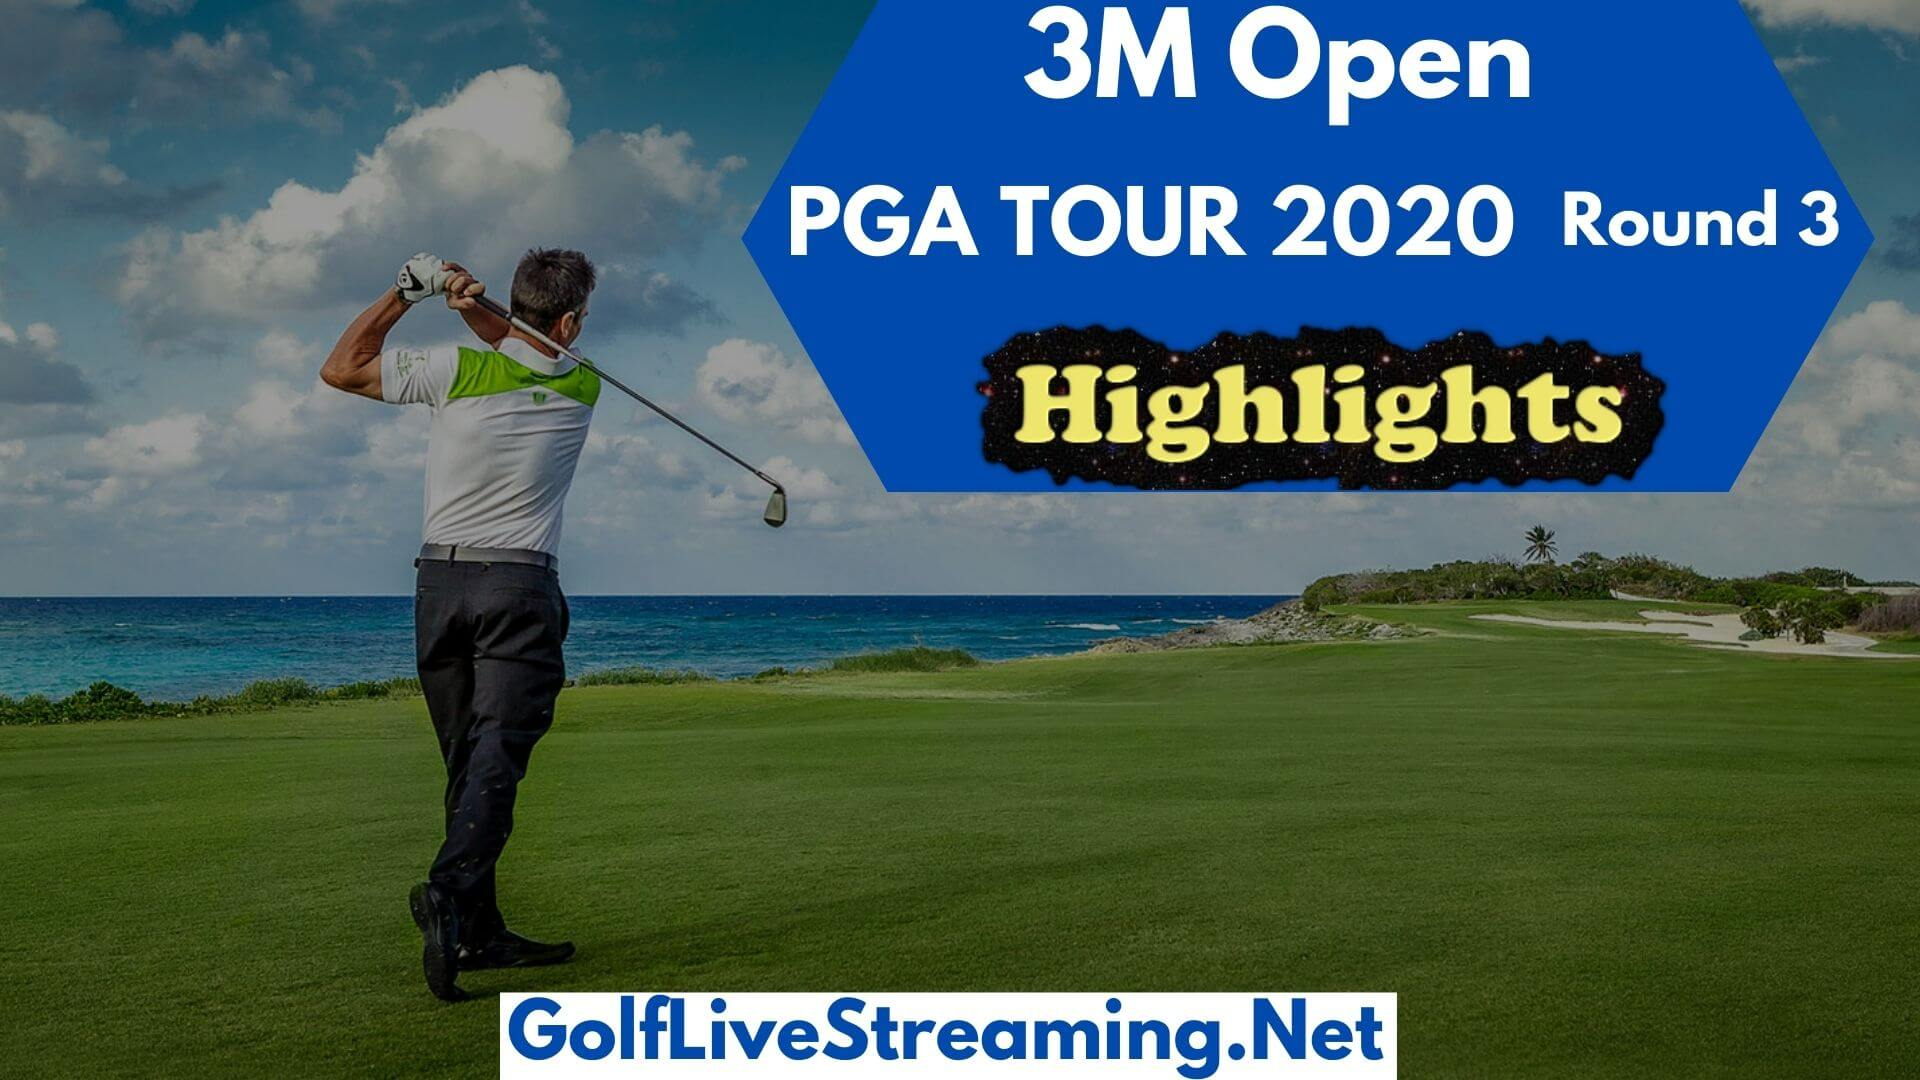 3M Open Rd 3 Highlights 2020 PGA TOUR